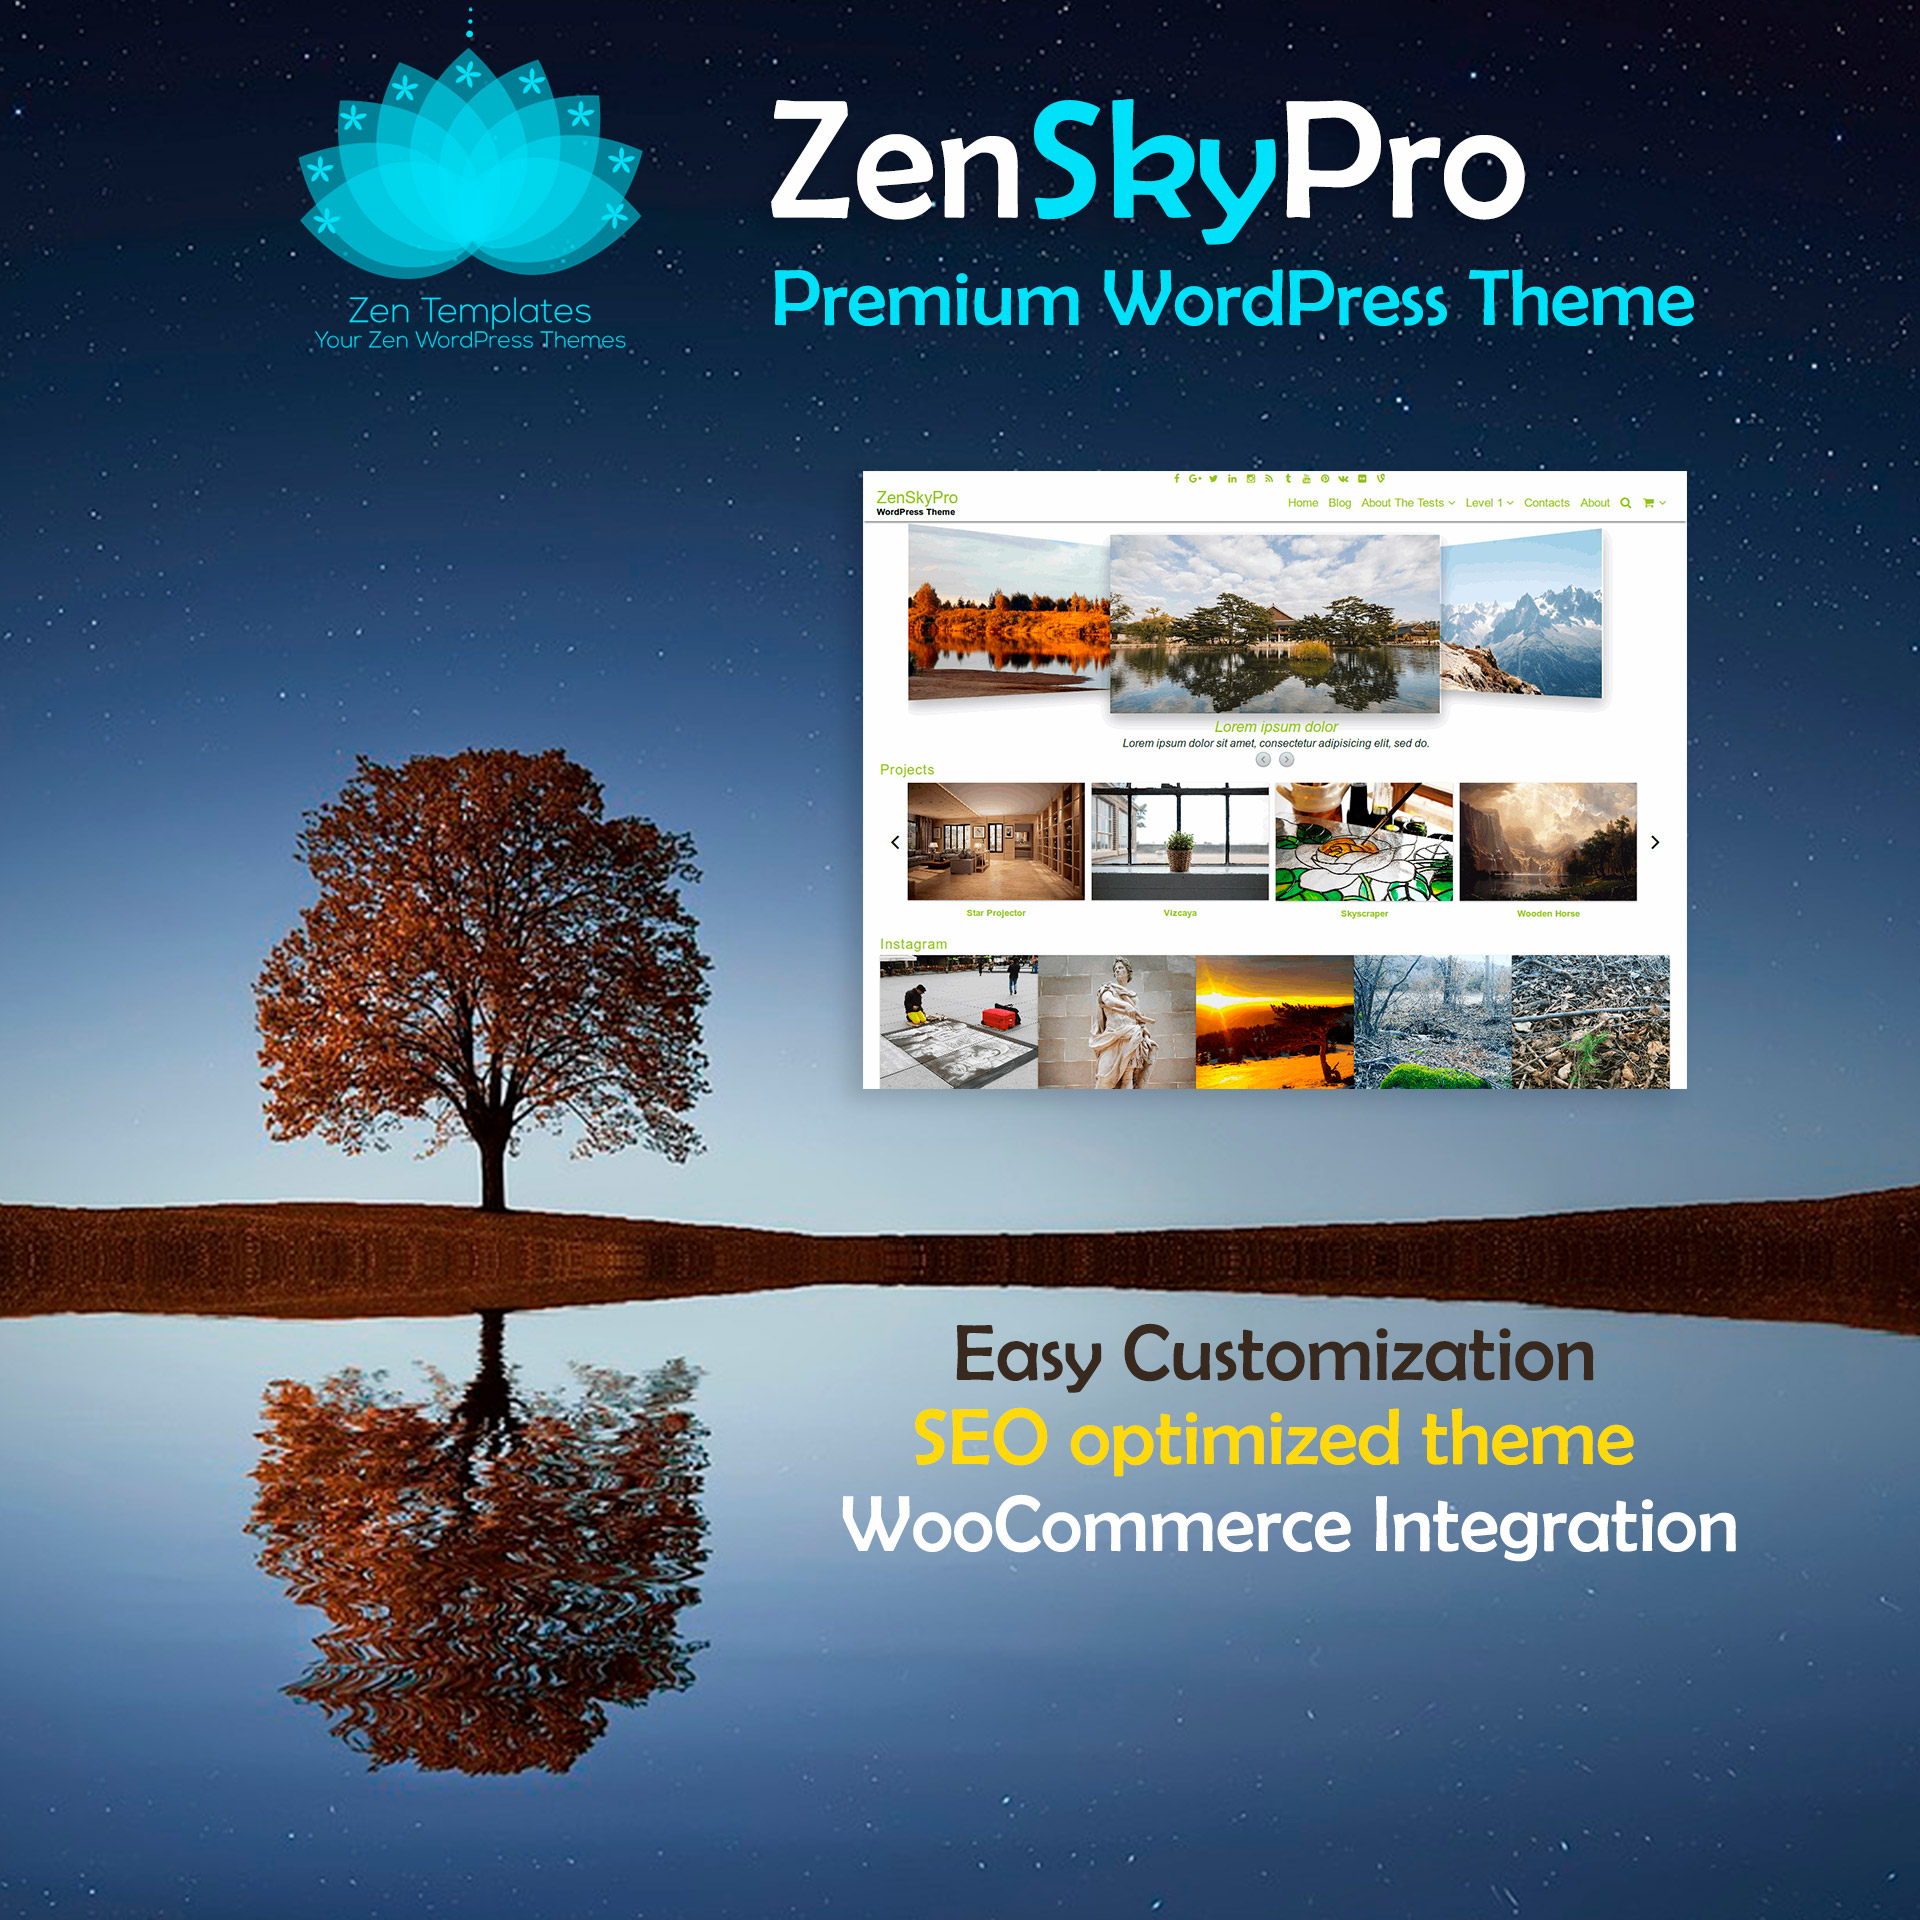 zenskypro-premium-wordpress-theme-mockup-zentemplates-com